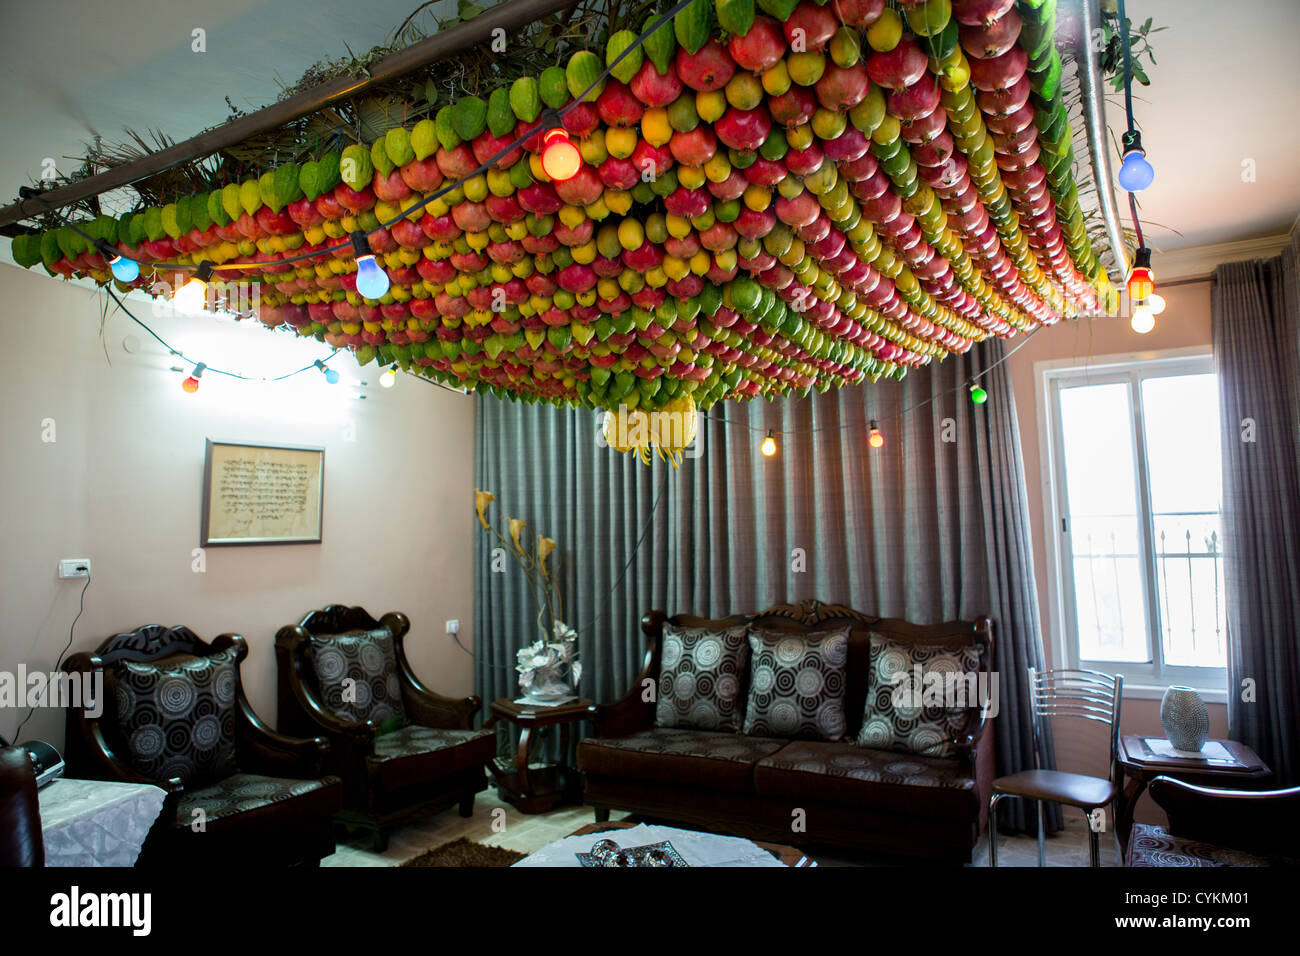 Samaritan indoor Sukkah is decorated with fresh fruit on the ceiling - Stock Image